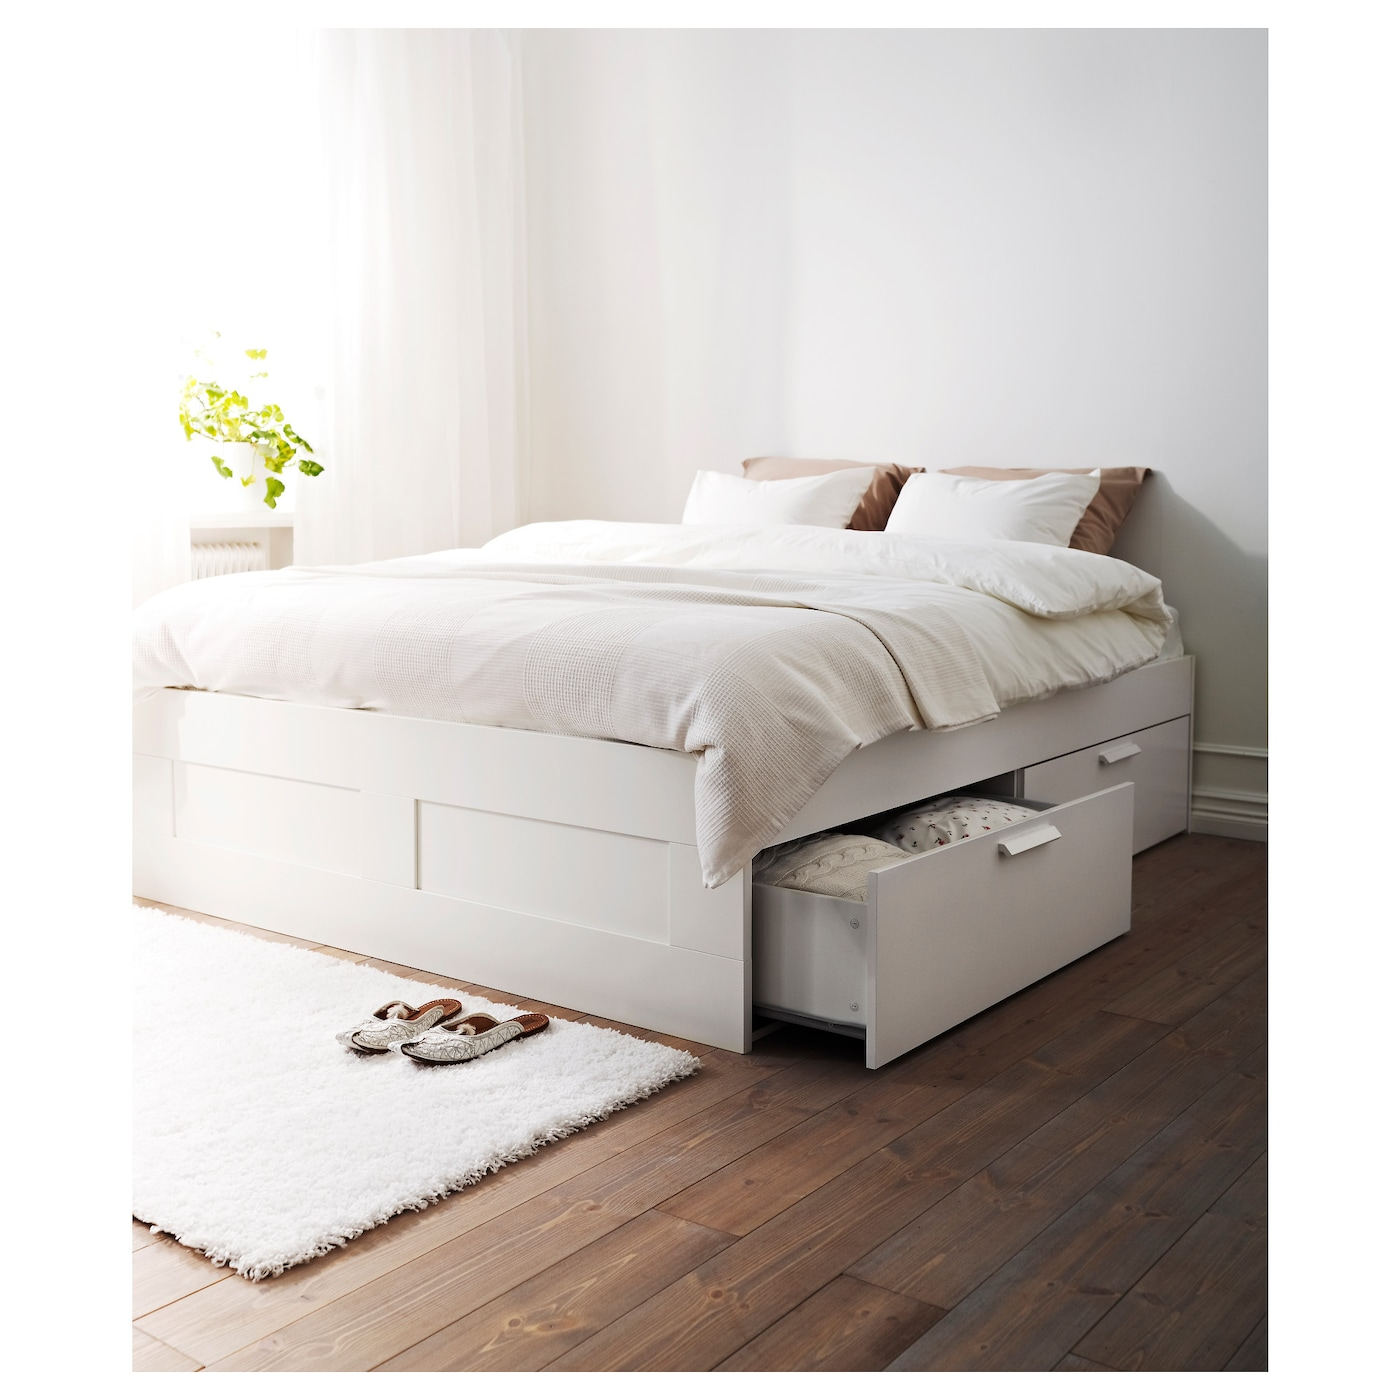 brimnes bed frame with storage white leirsund 180x200 cm. Black Bedroom Furniture Sets. Home Design Ideas